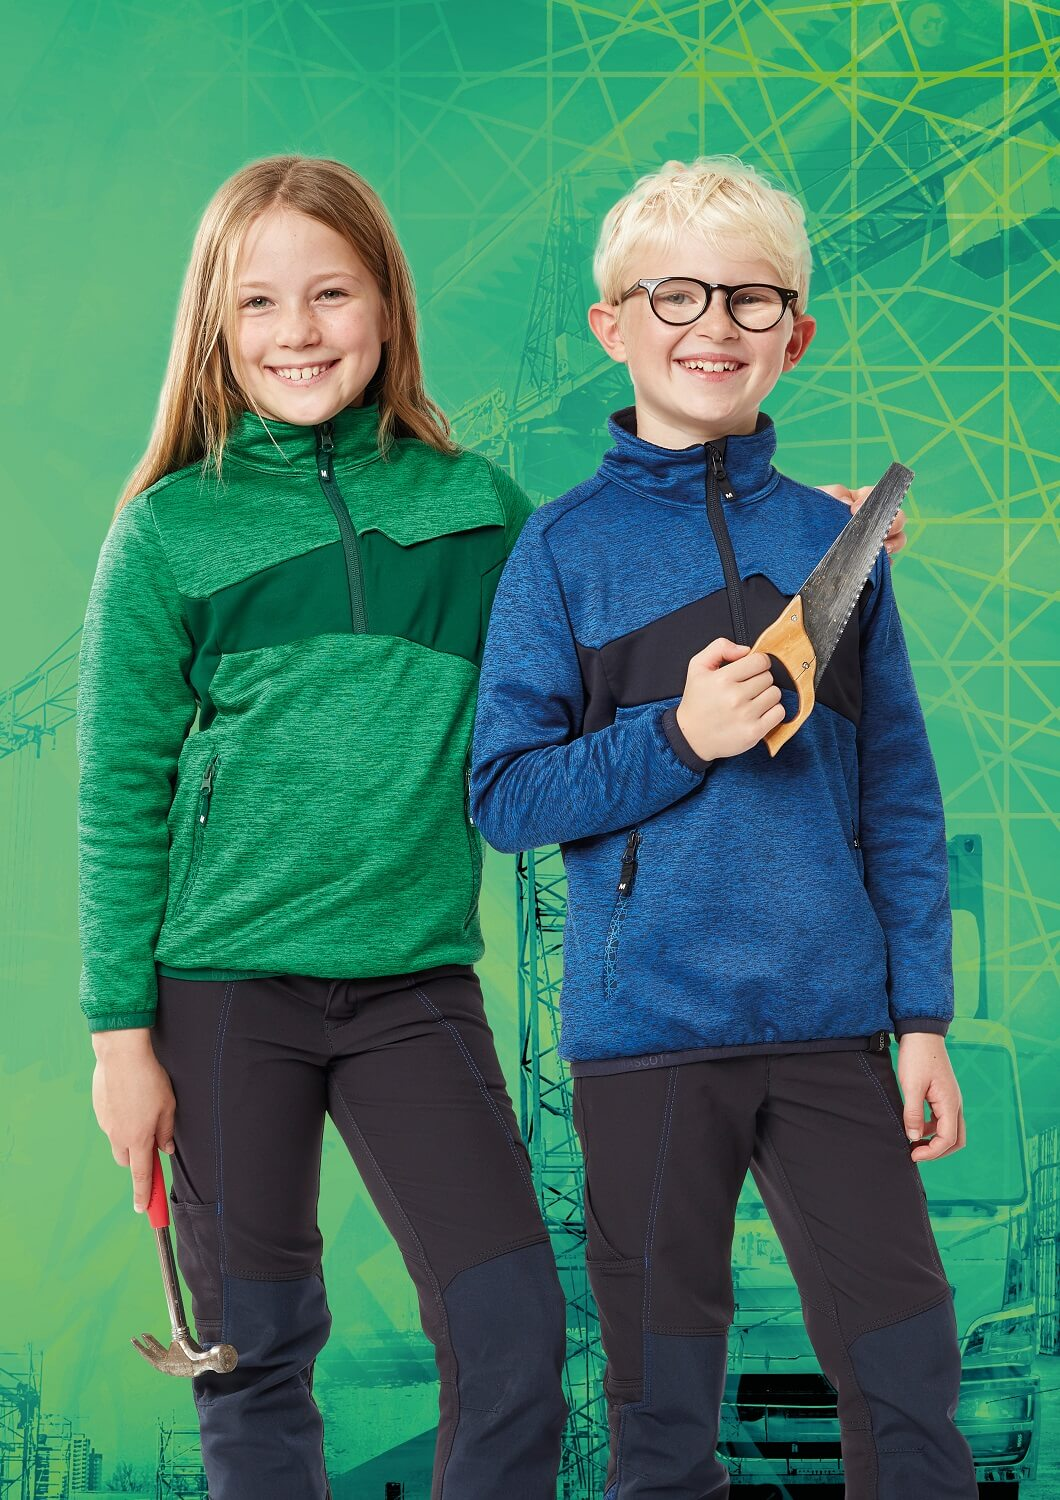 Children's Clothing - Green, Royal blue & Black - MASCOT® ACCELERATE